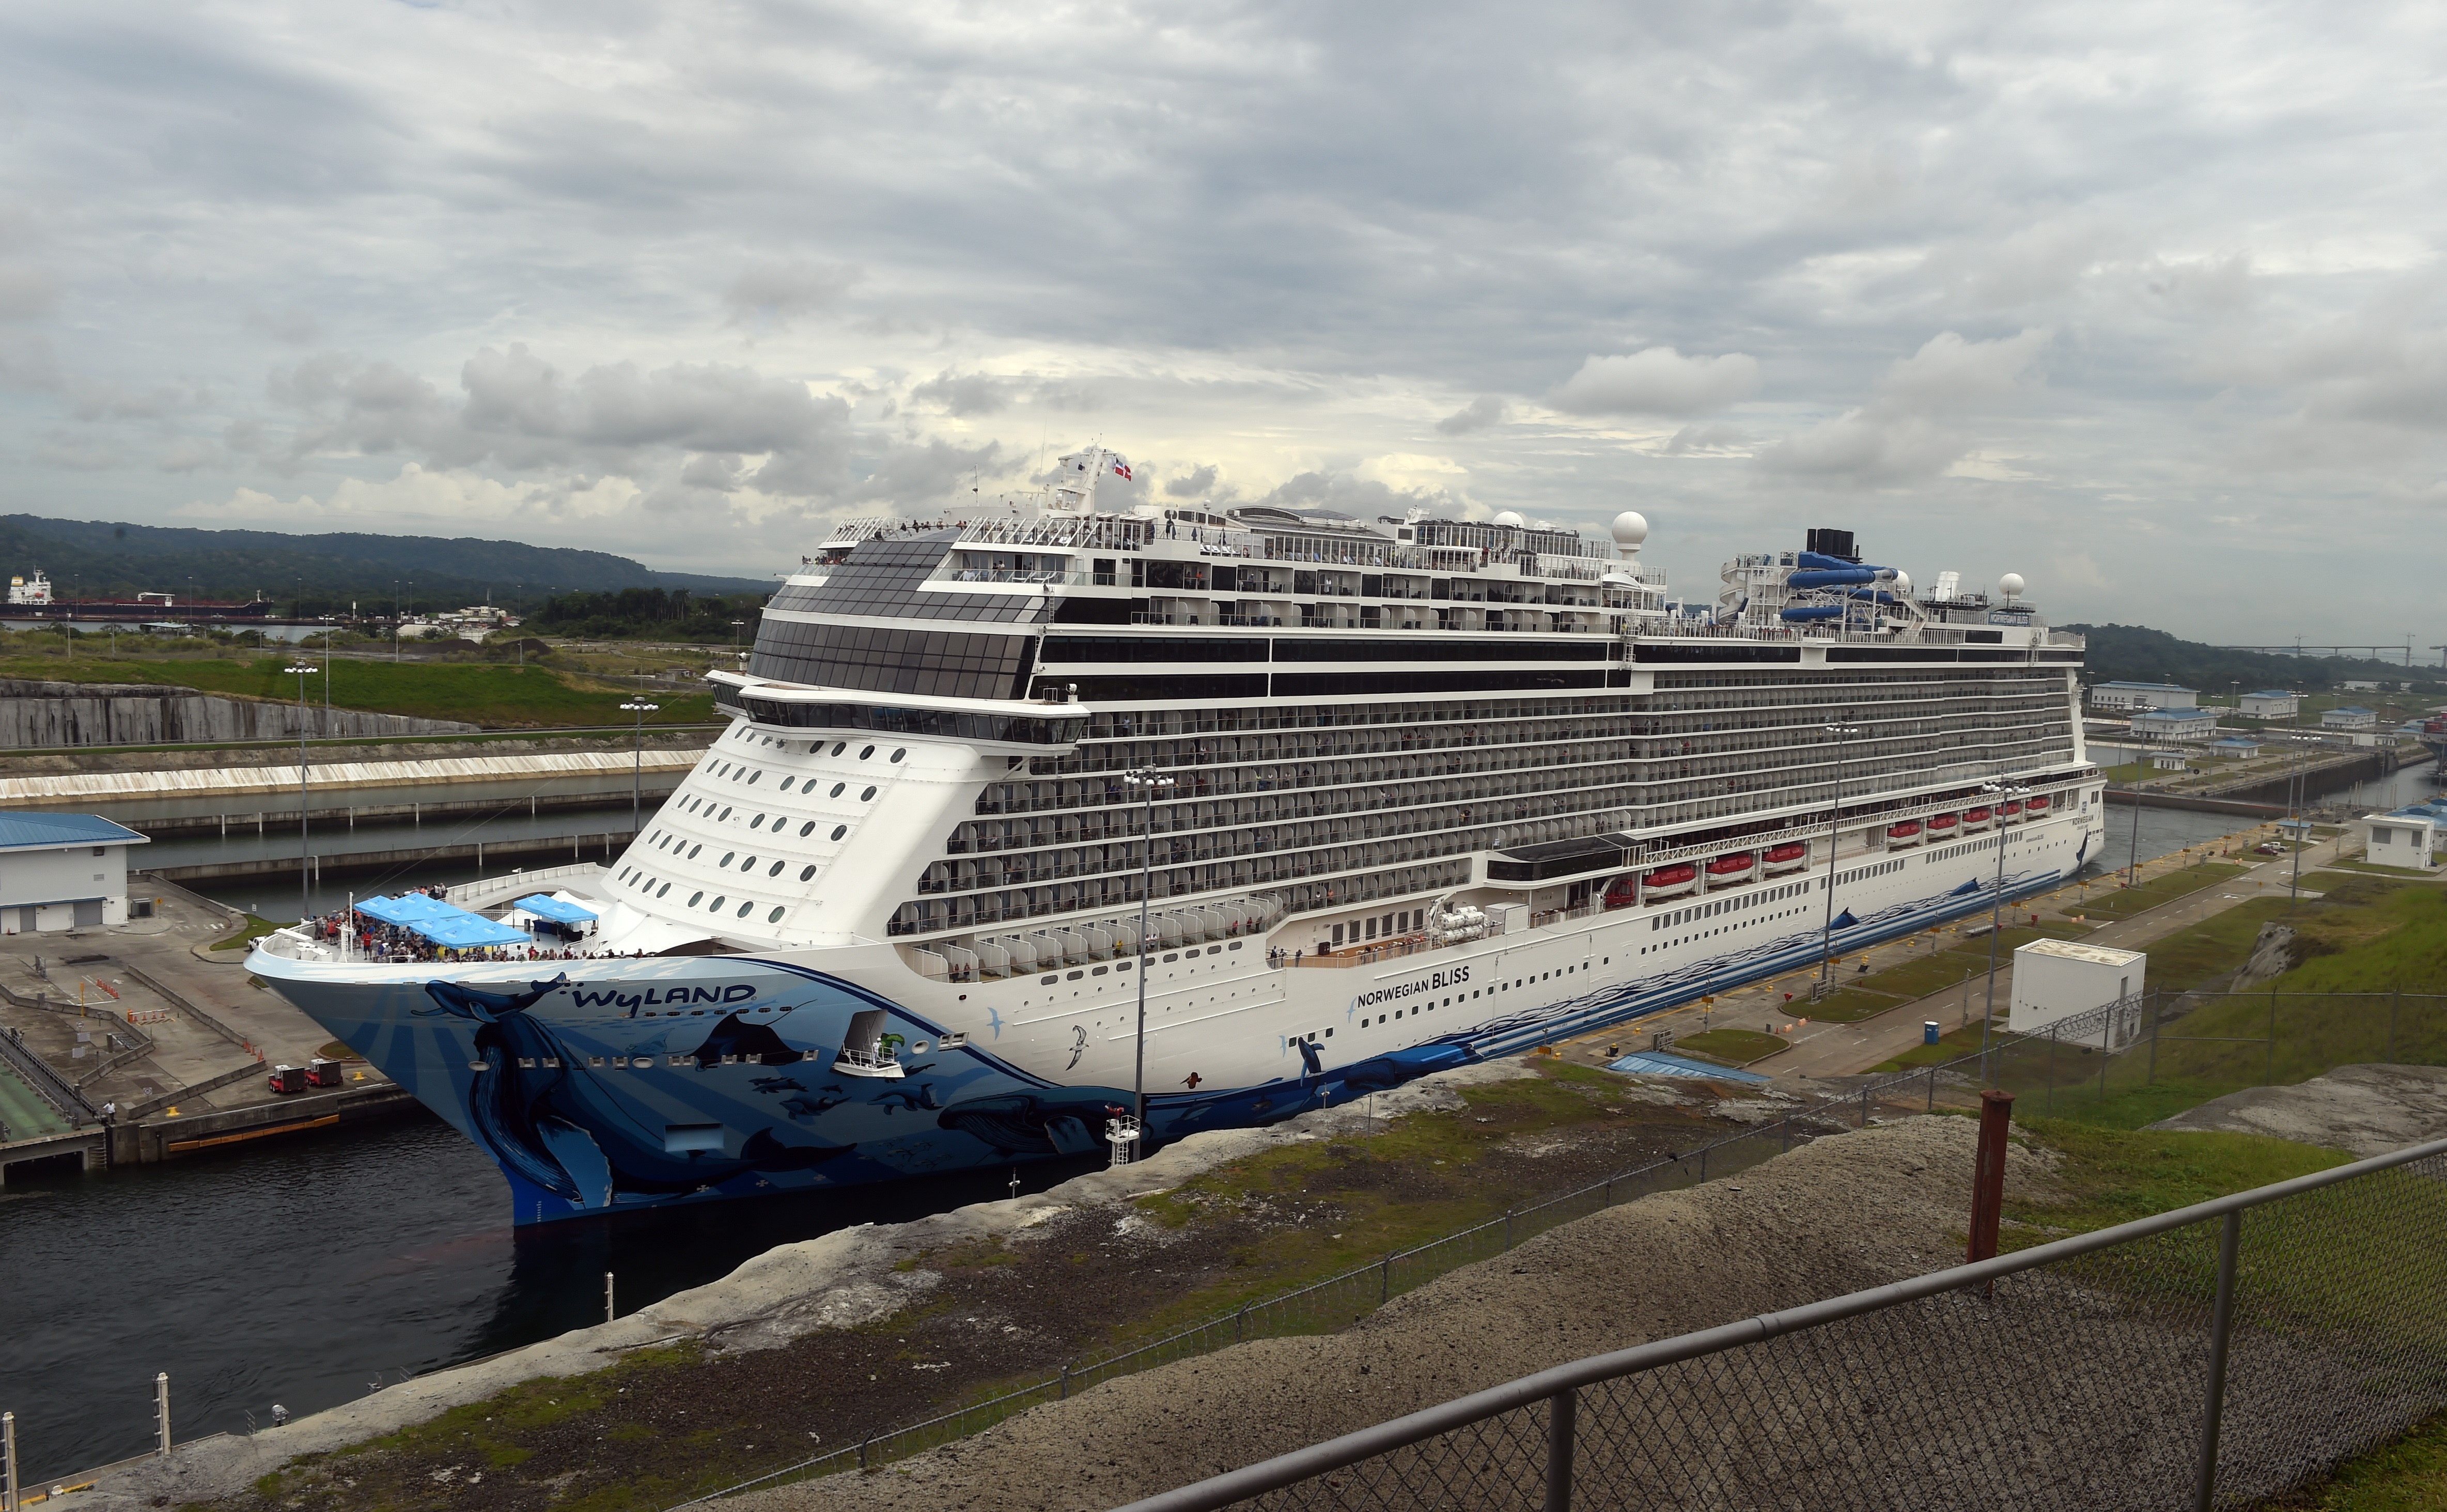 View of a cruise ship crossing the Panama Canal in the Agua Clara locks in Colon 80 km northwest from Panama City.